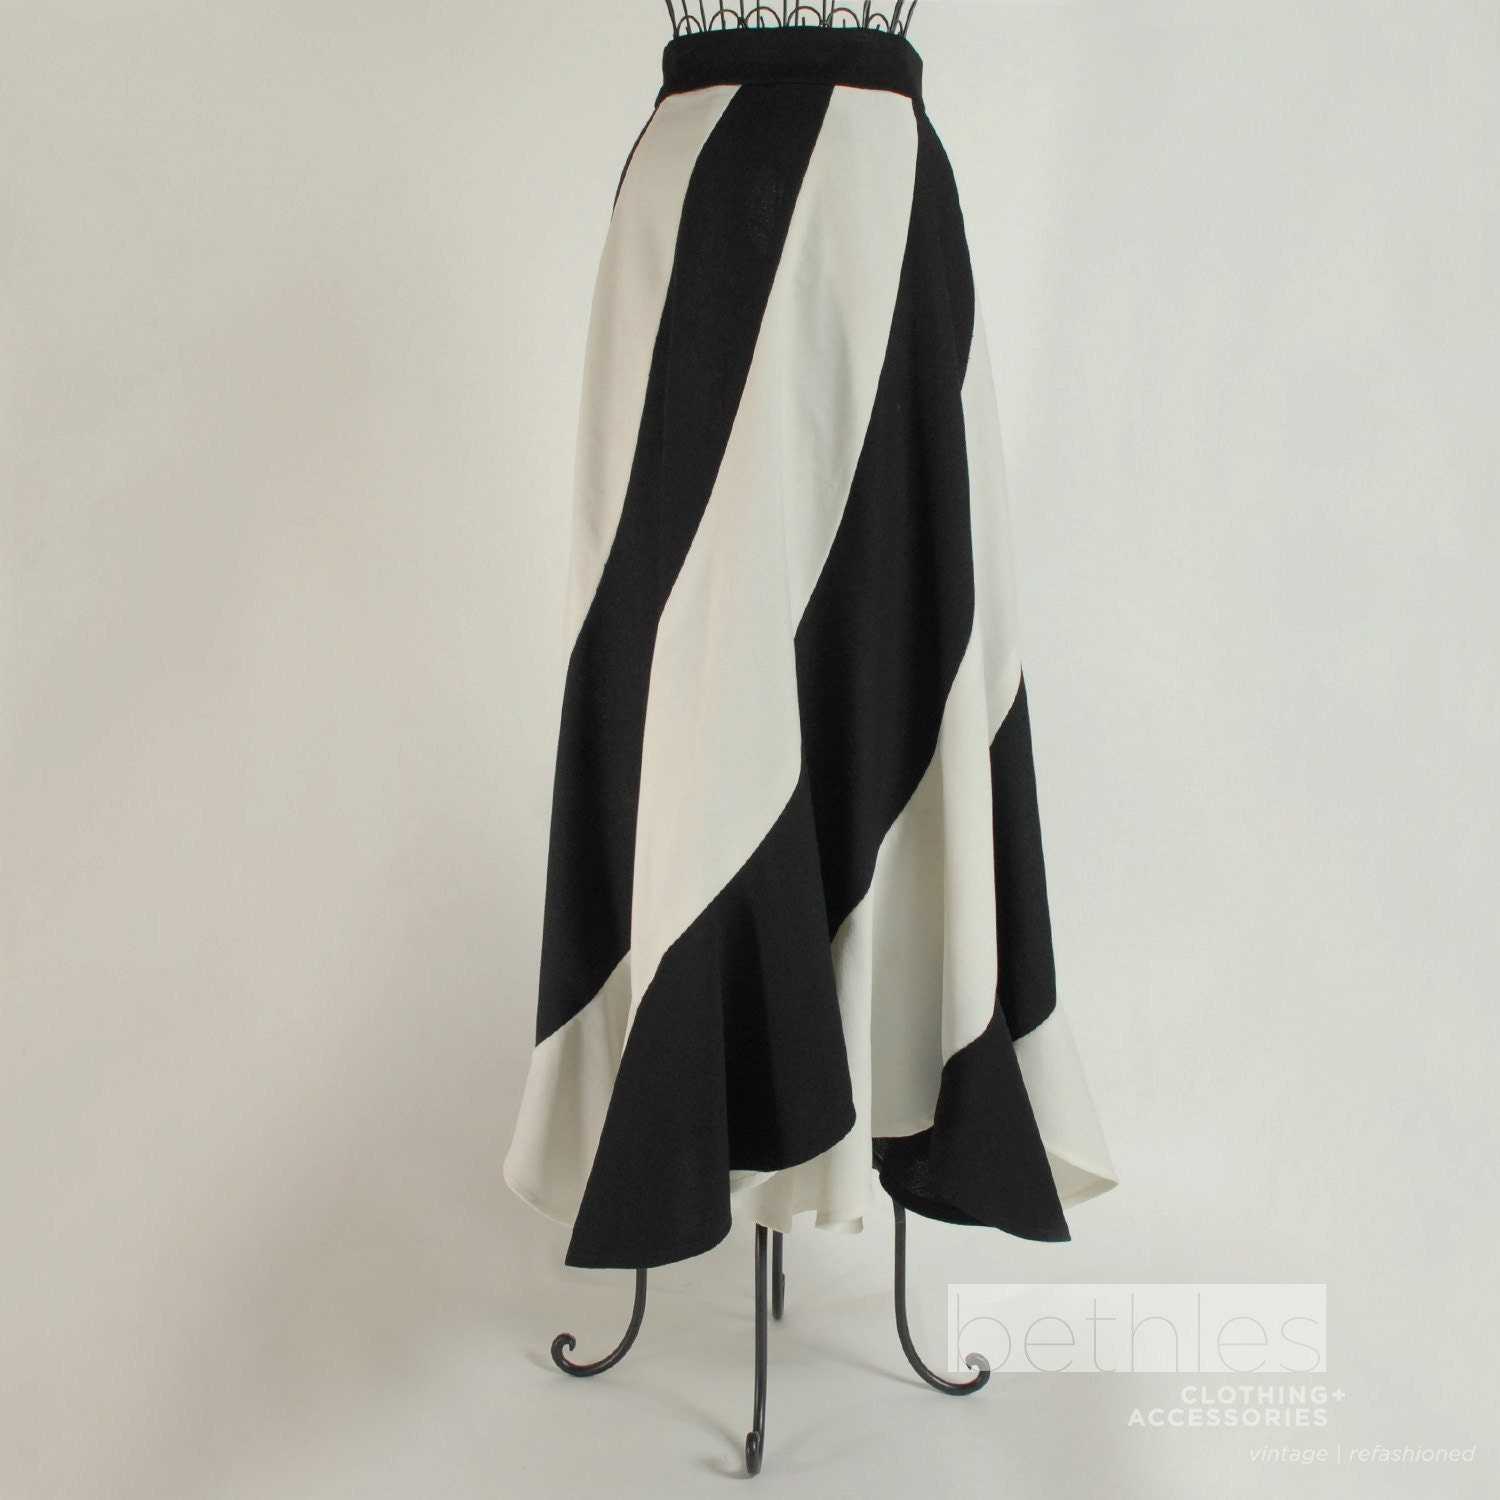 A Line Striped Maxi Skirt - METSk This is my maxi, high-waisted, monochrome take on the stylish A line skirts. The black and white horizontal stripes are a flattering pattern that elongates the legs and won't go unnoticed.